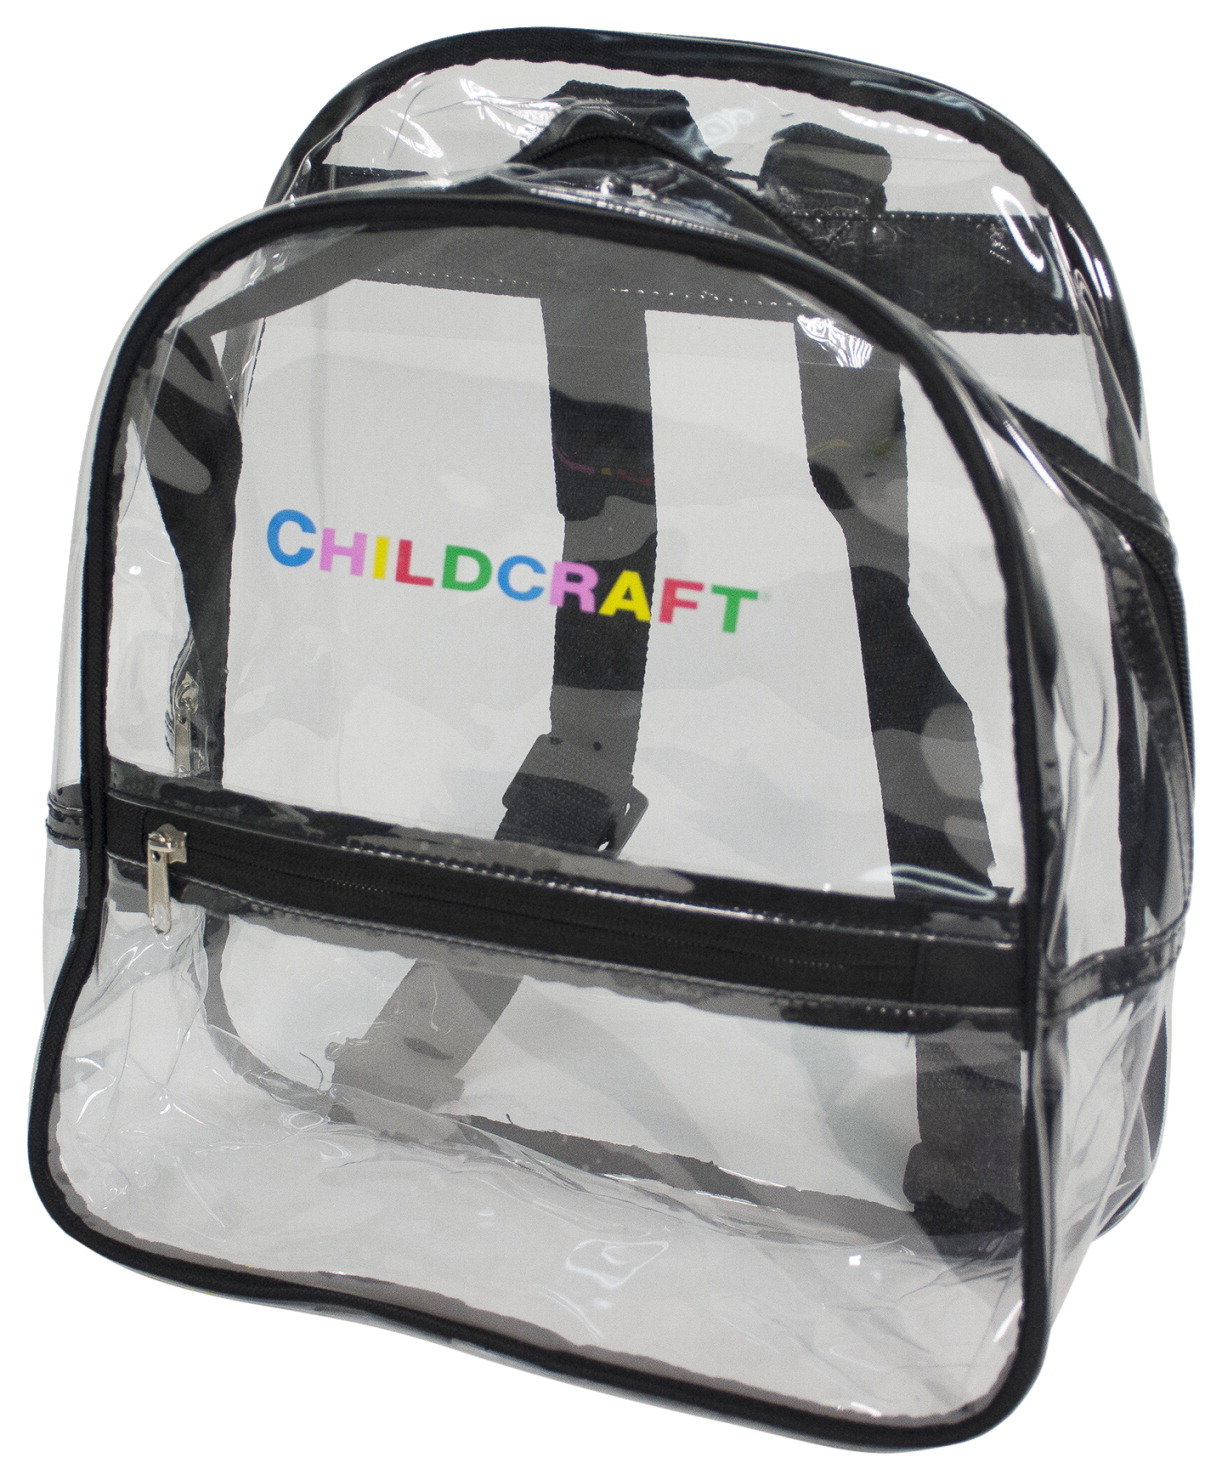 Childcraft Backpack, Clear, Small